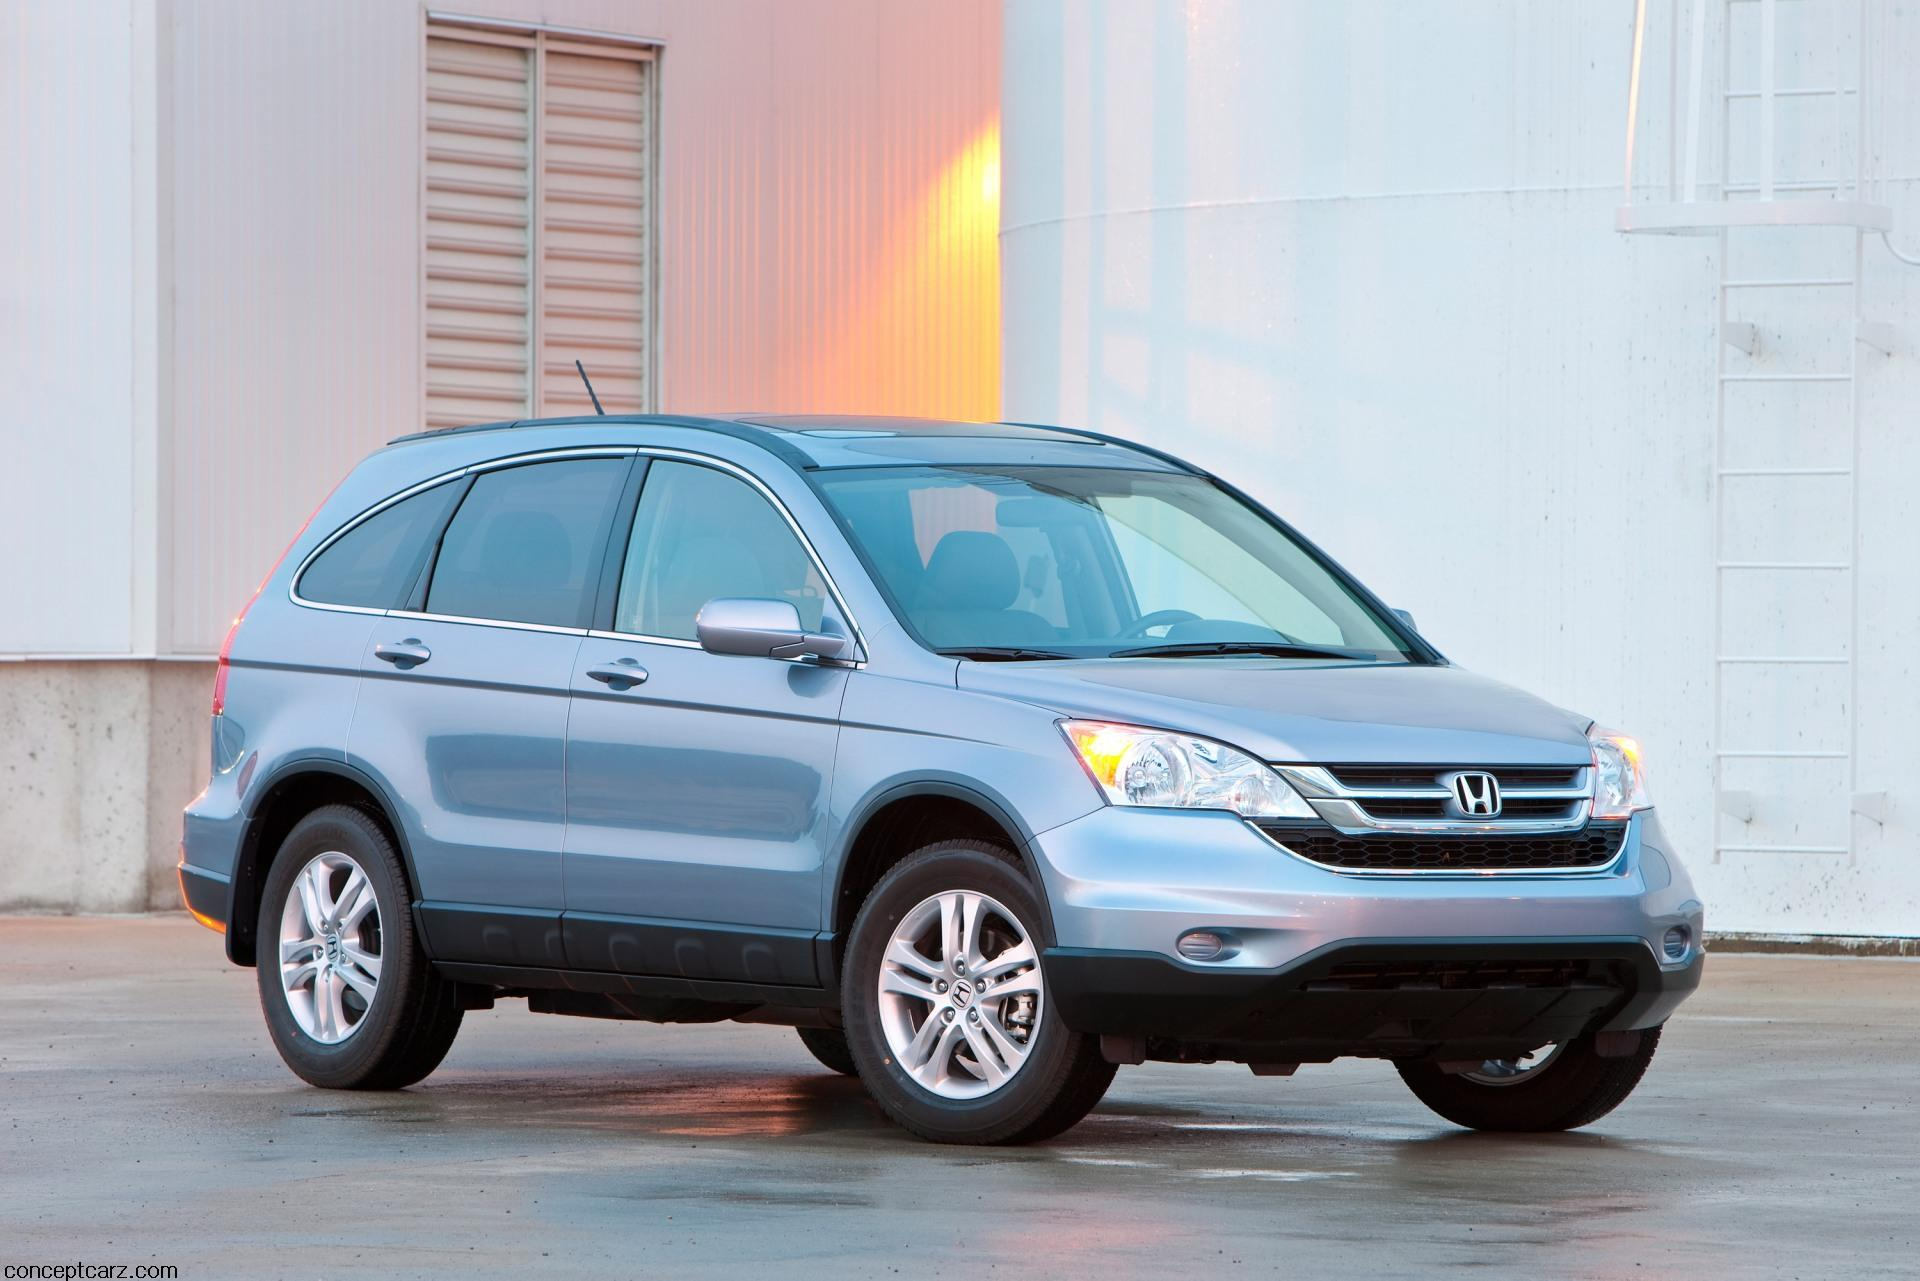 2011 Honda Cr V News And Information Conceptcarz Com